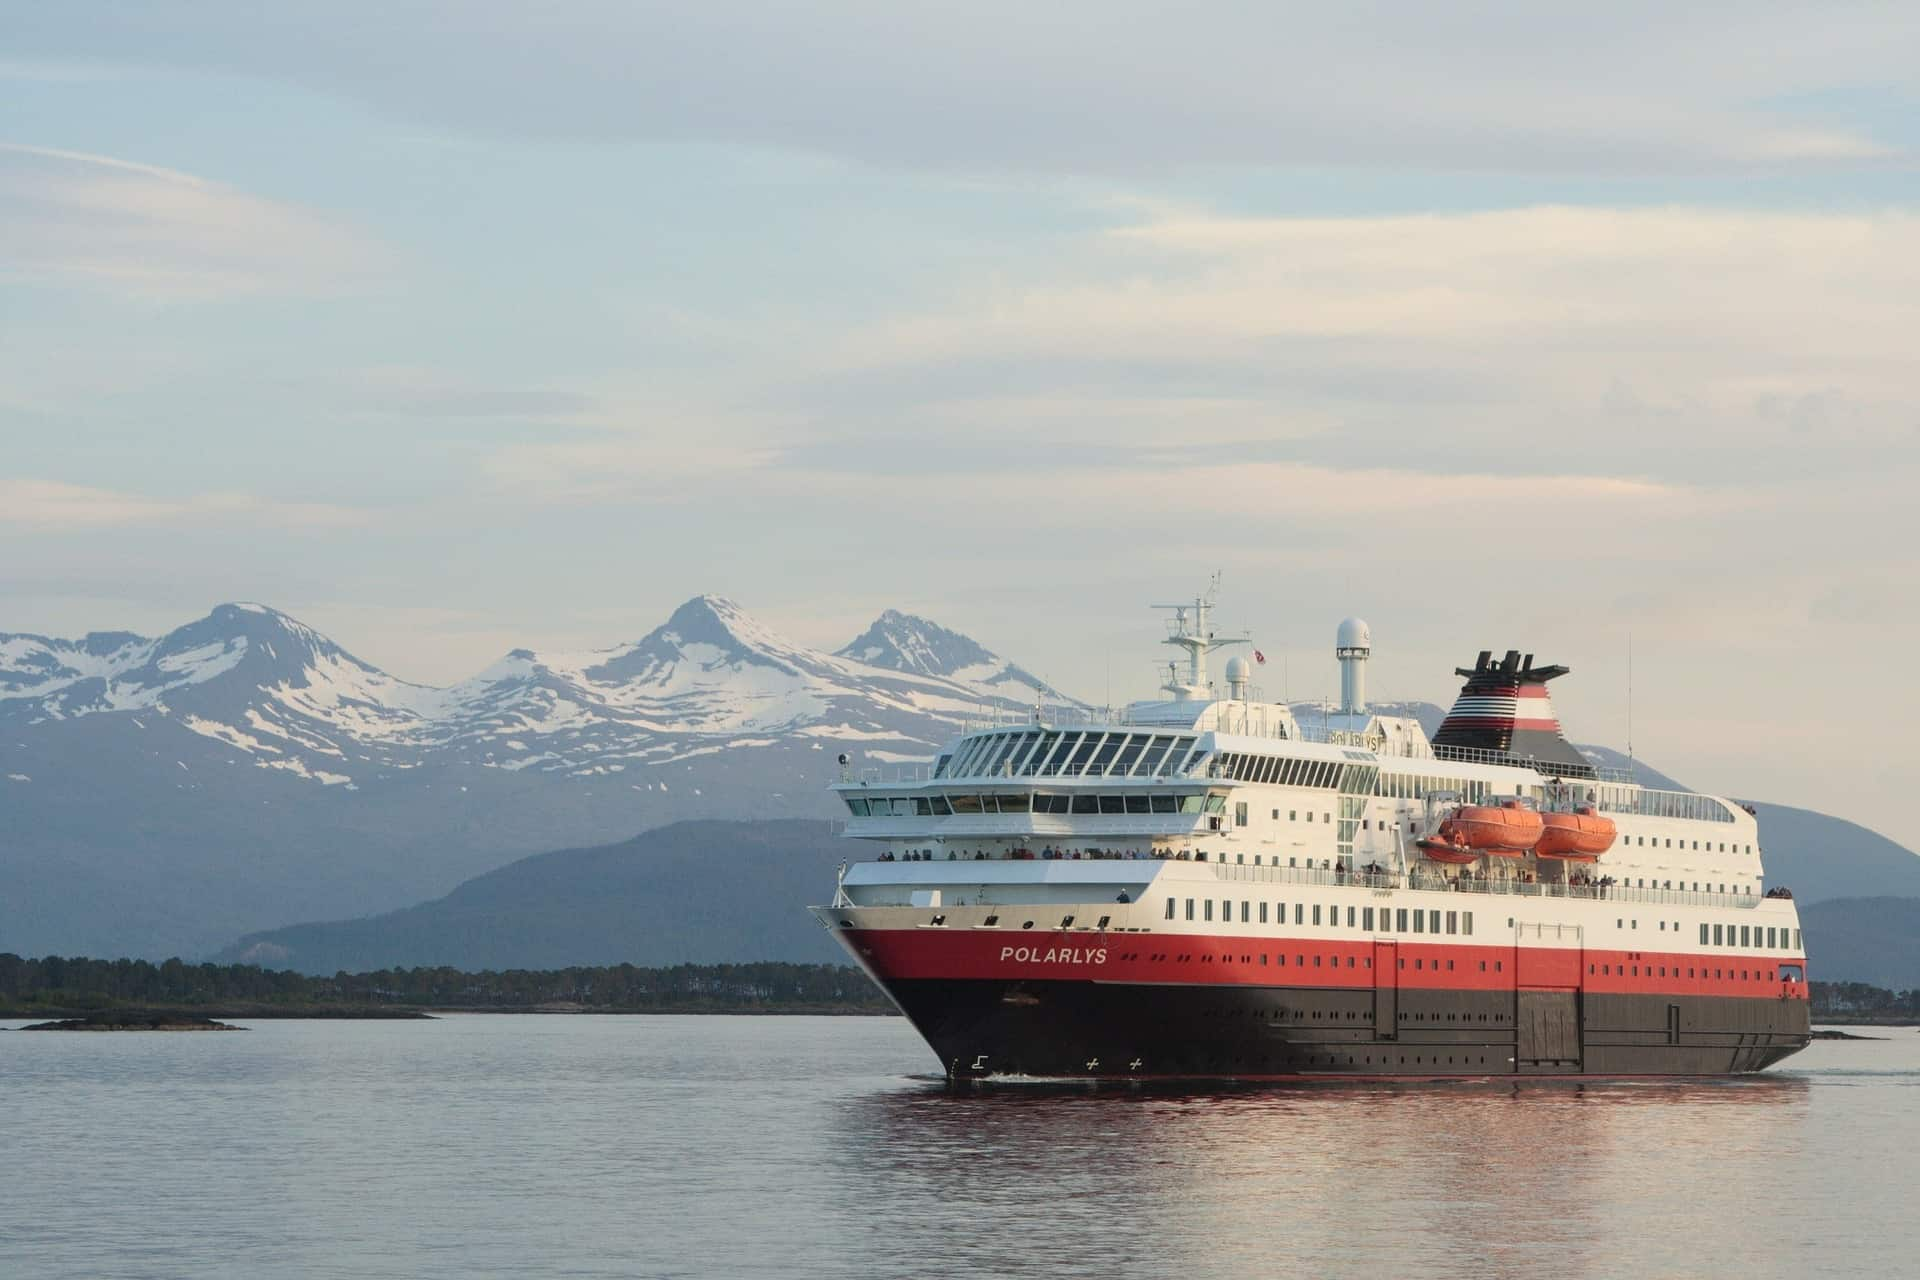 Hurtigruten departs from the ancient Hanseatic city of Bergen and sails all the way to Kirkenes, near the border with Russia and then back to Bergen.